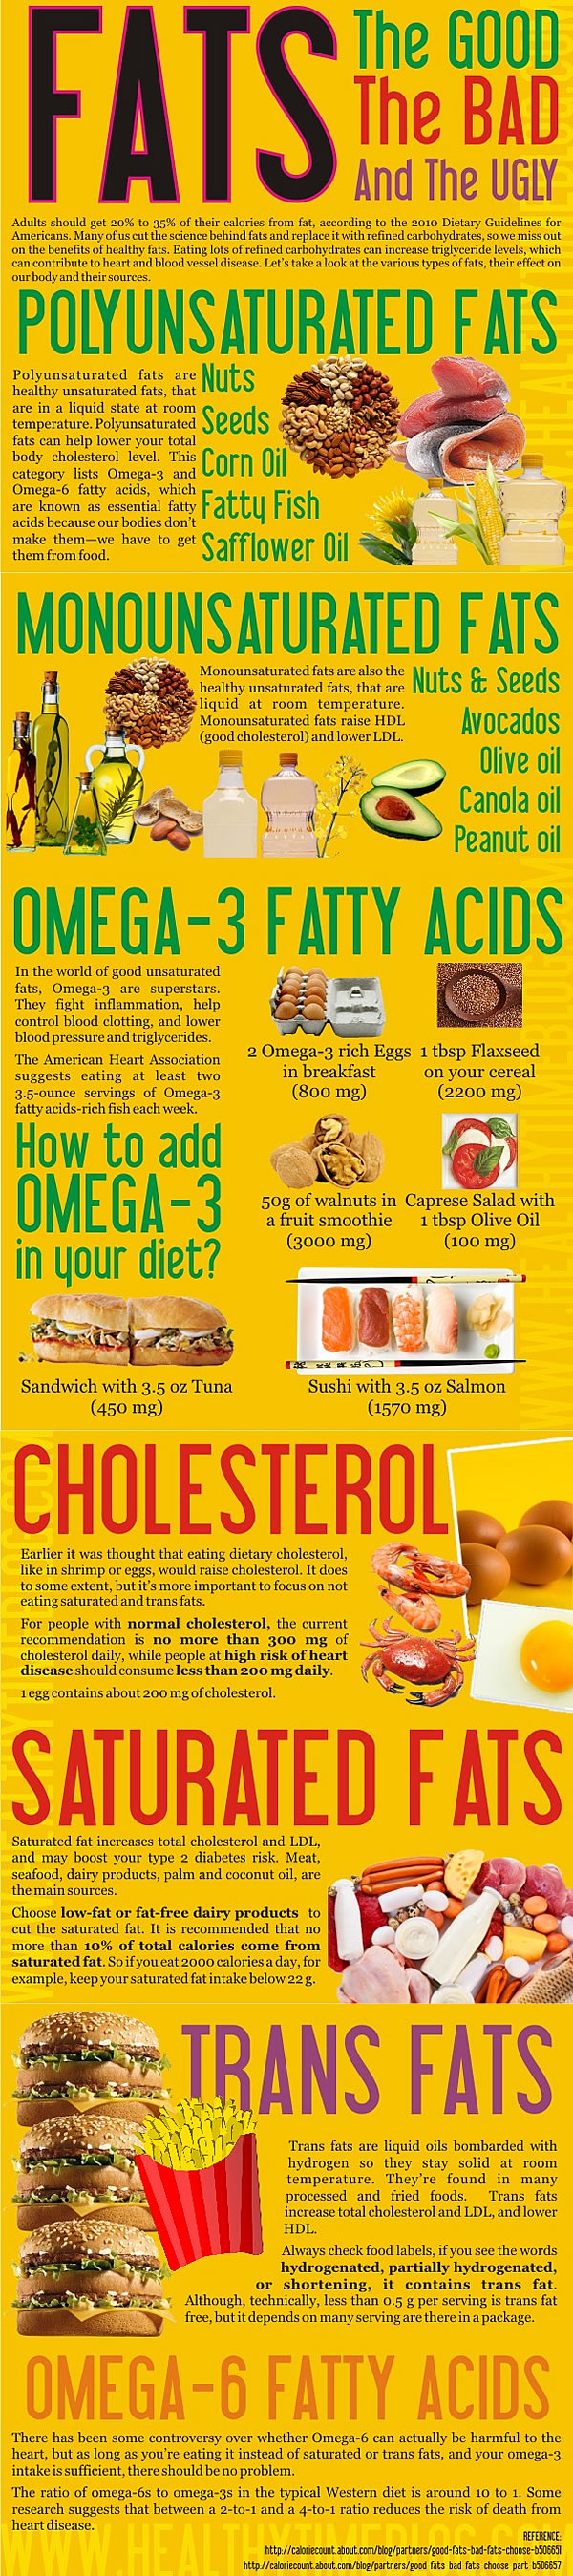 Knowledge about Fats